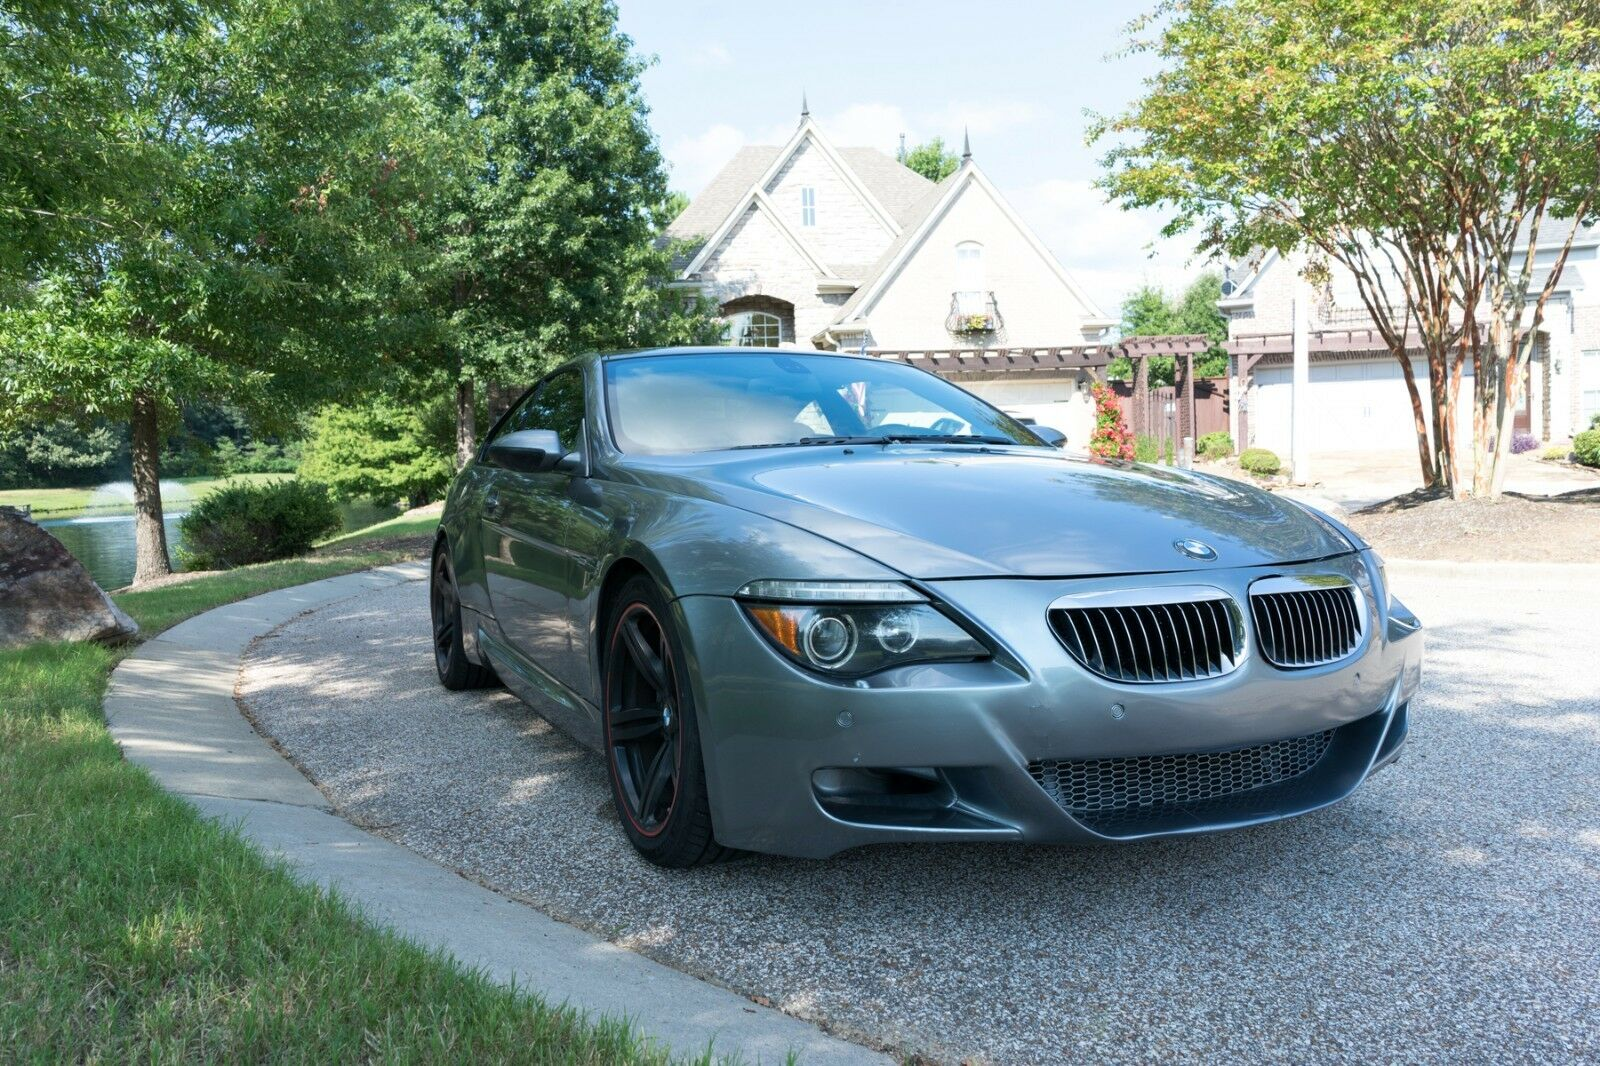 2007 BMW M6 Coupe BMW M6 Coupe 5.0L V10 SMG Coupe 2-Door Low Miles